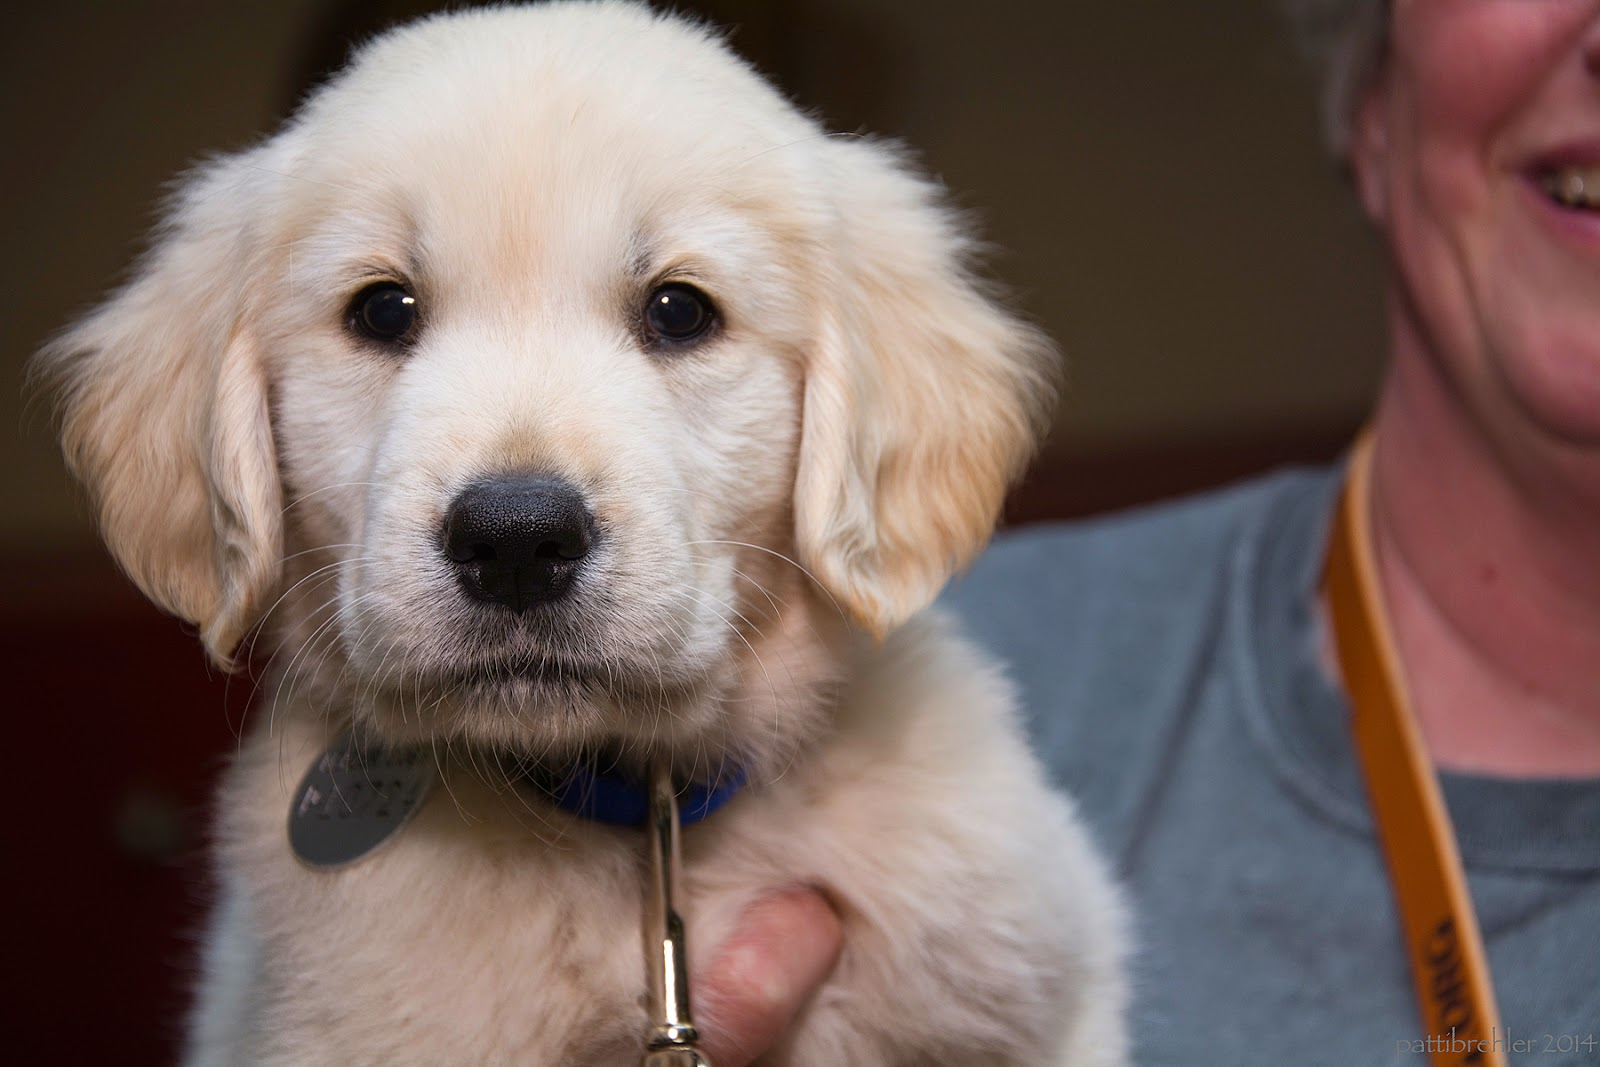 A close shot of a fuzzy white golden retriever puppy being held by a woman just off camera to the right. The puppy is looking right at the camera and has dark eyes and a black nose.